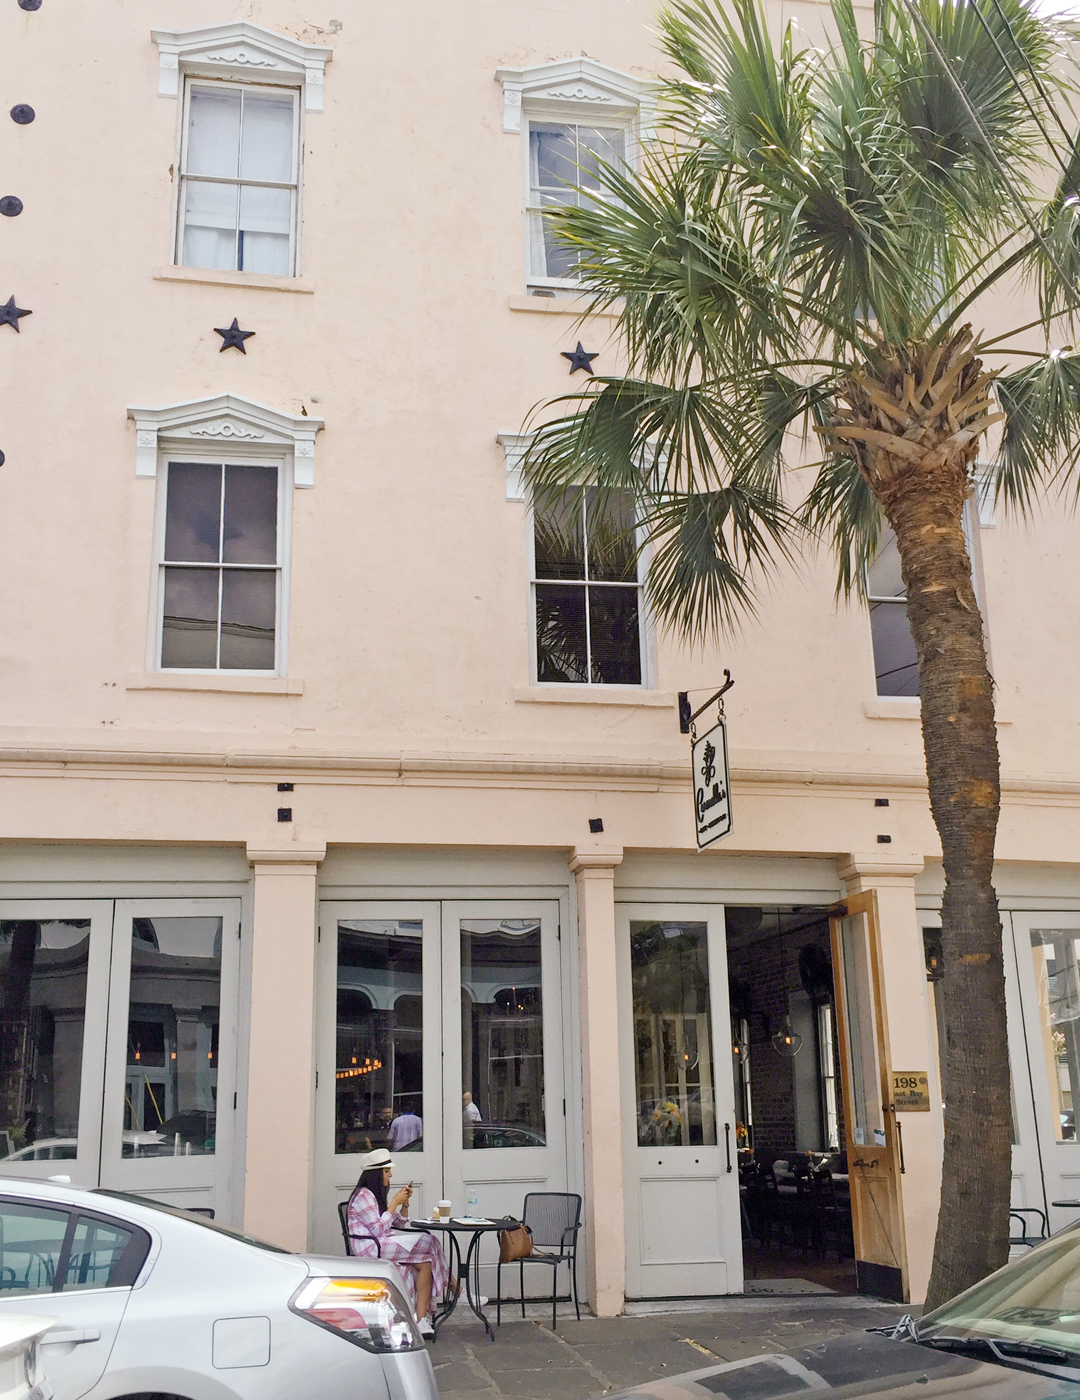 Our 3-day Trip to Charleston, SC